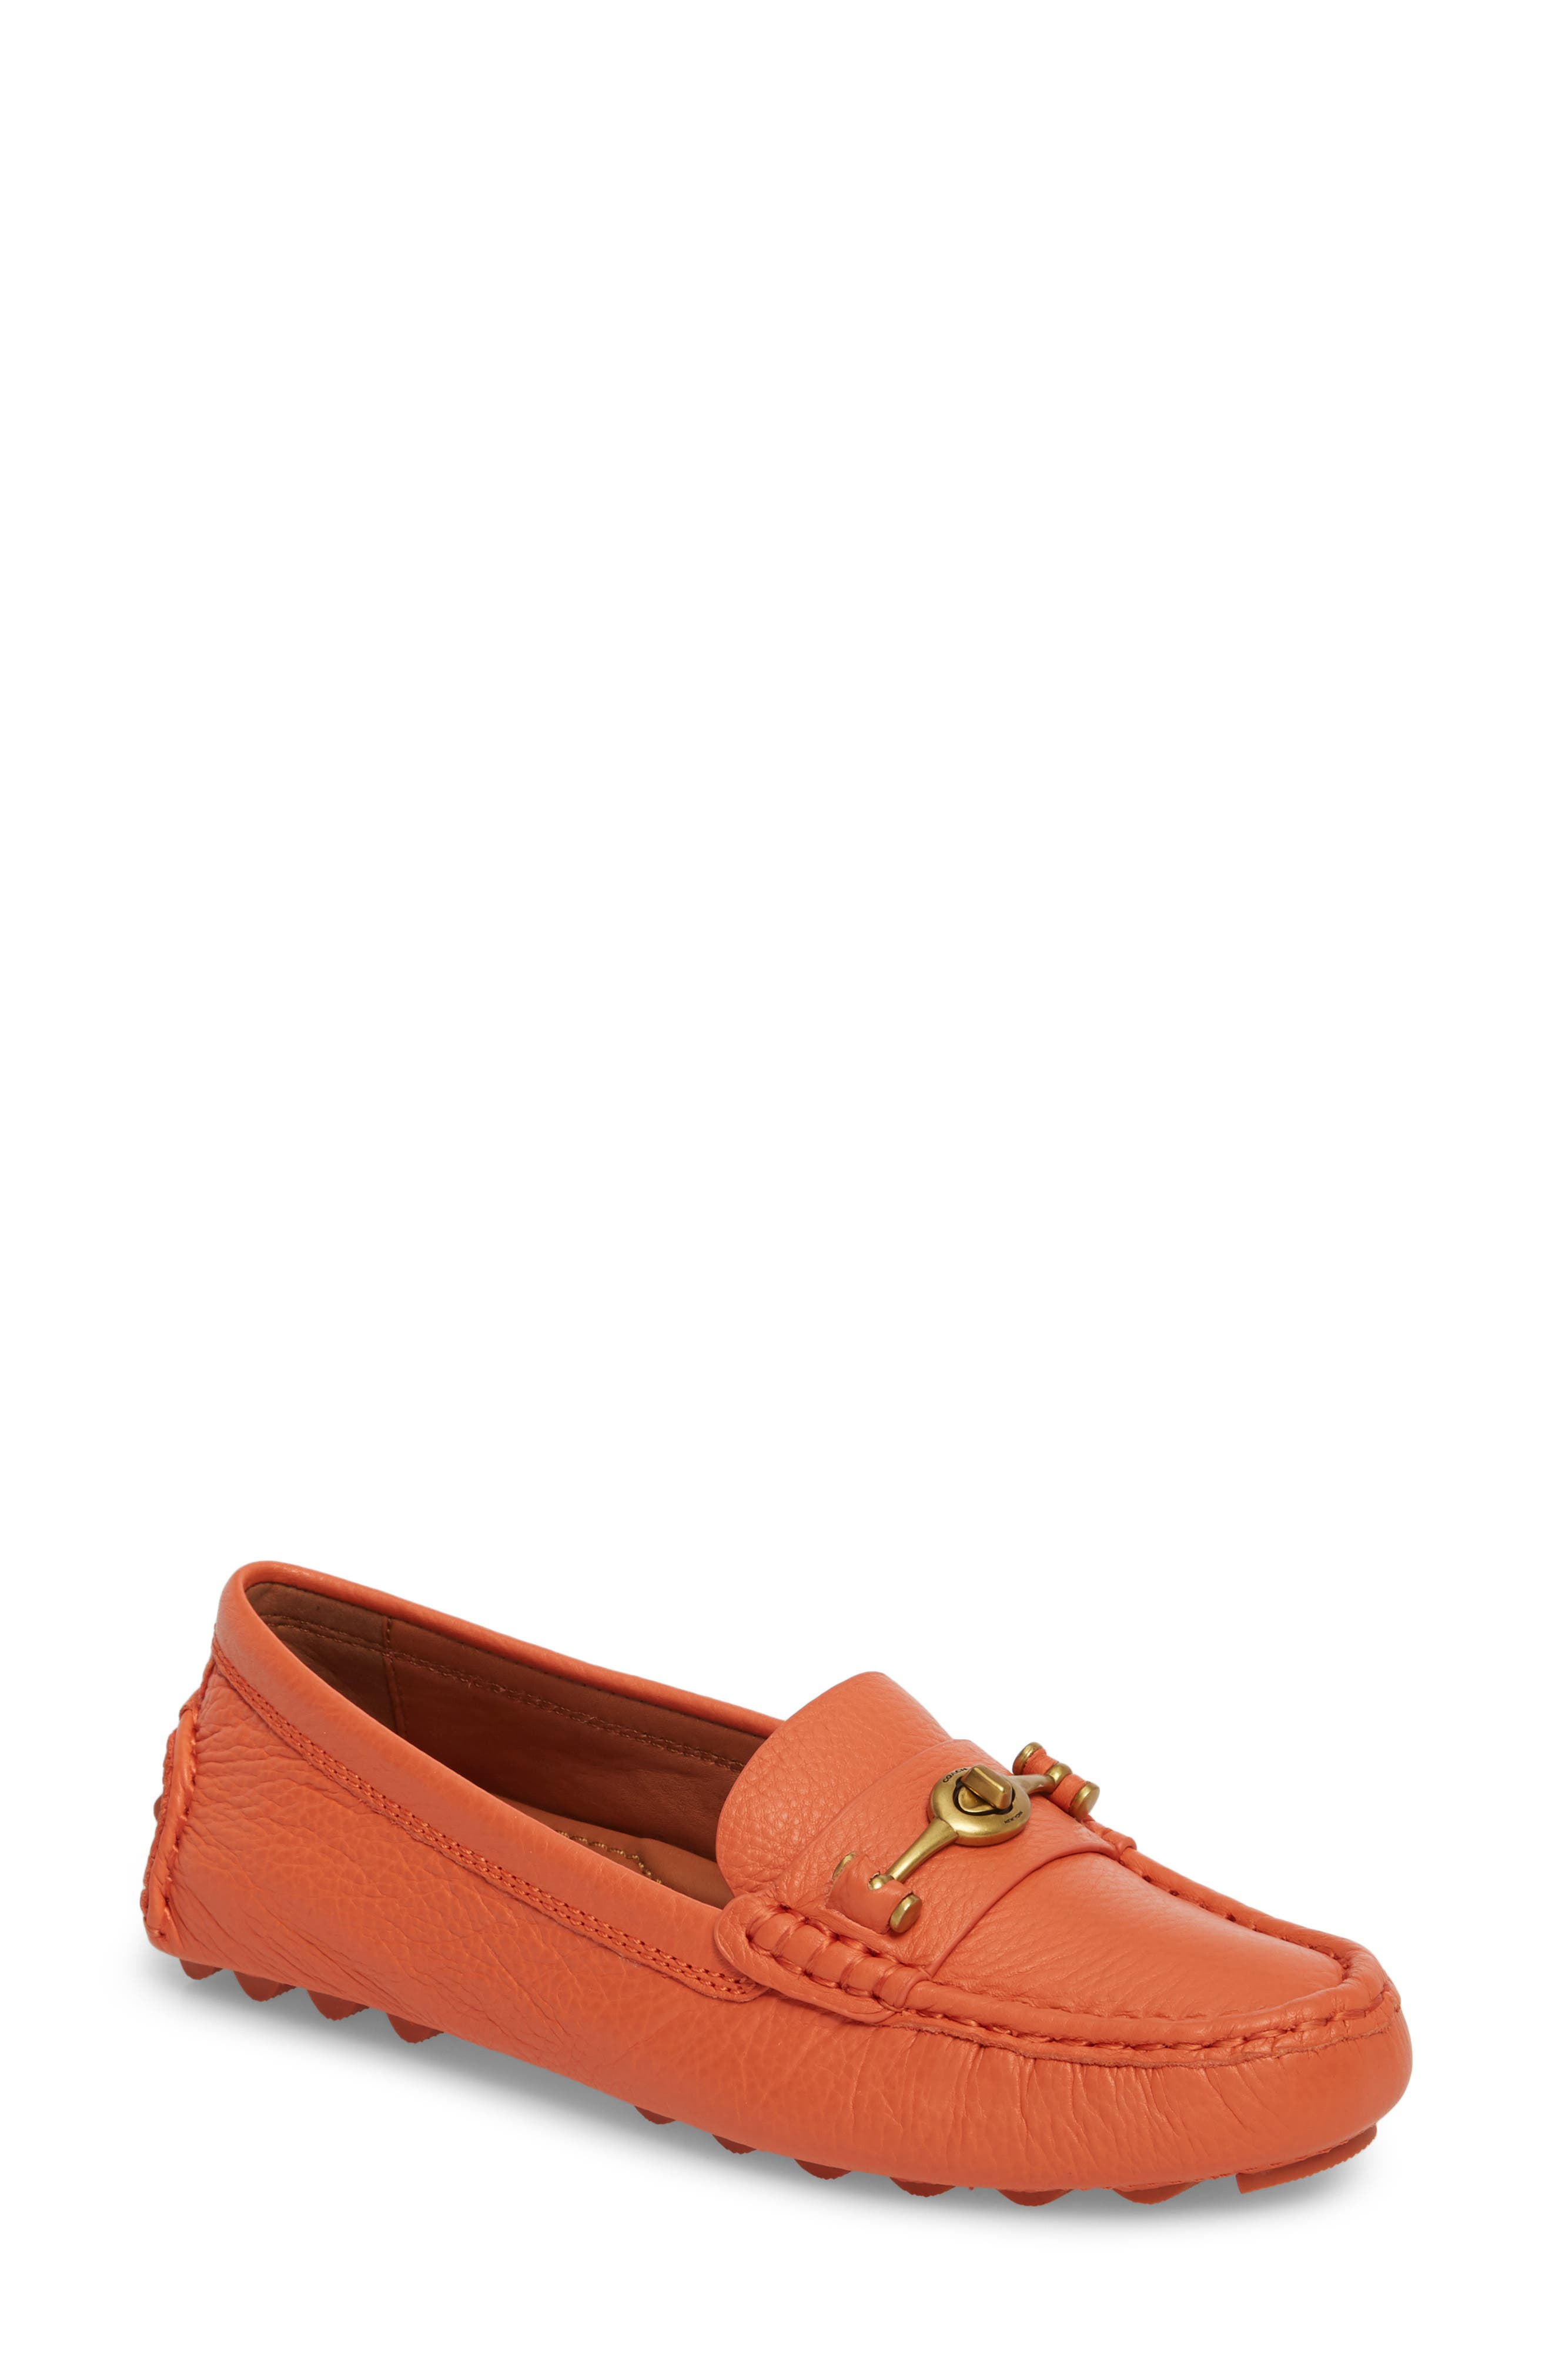 Alternate Image 1 Selected - COACH Crosby Driver Loafer (Women)